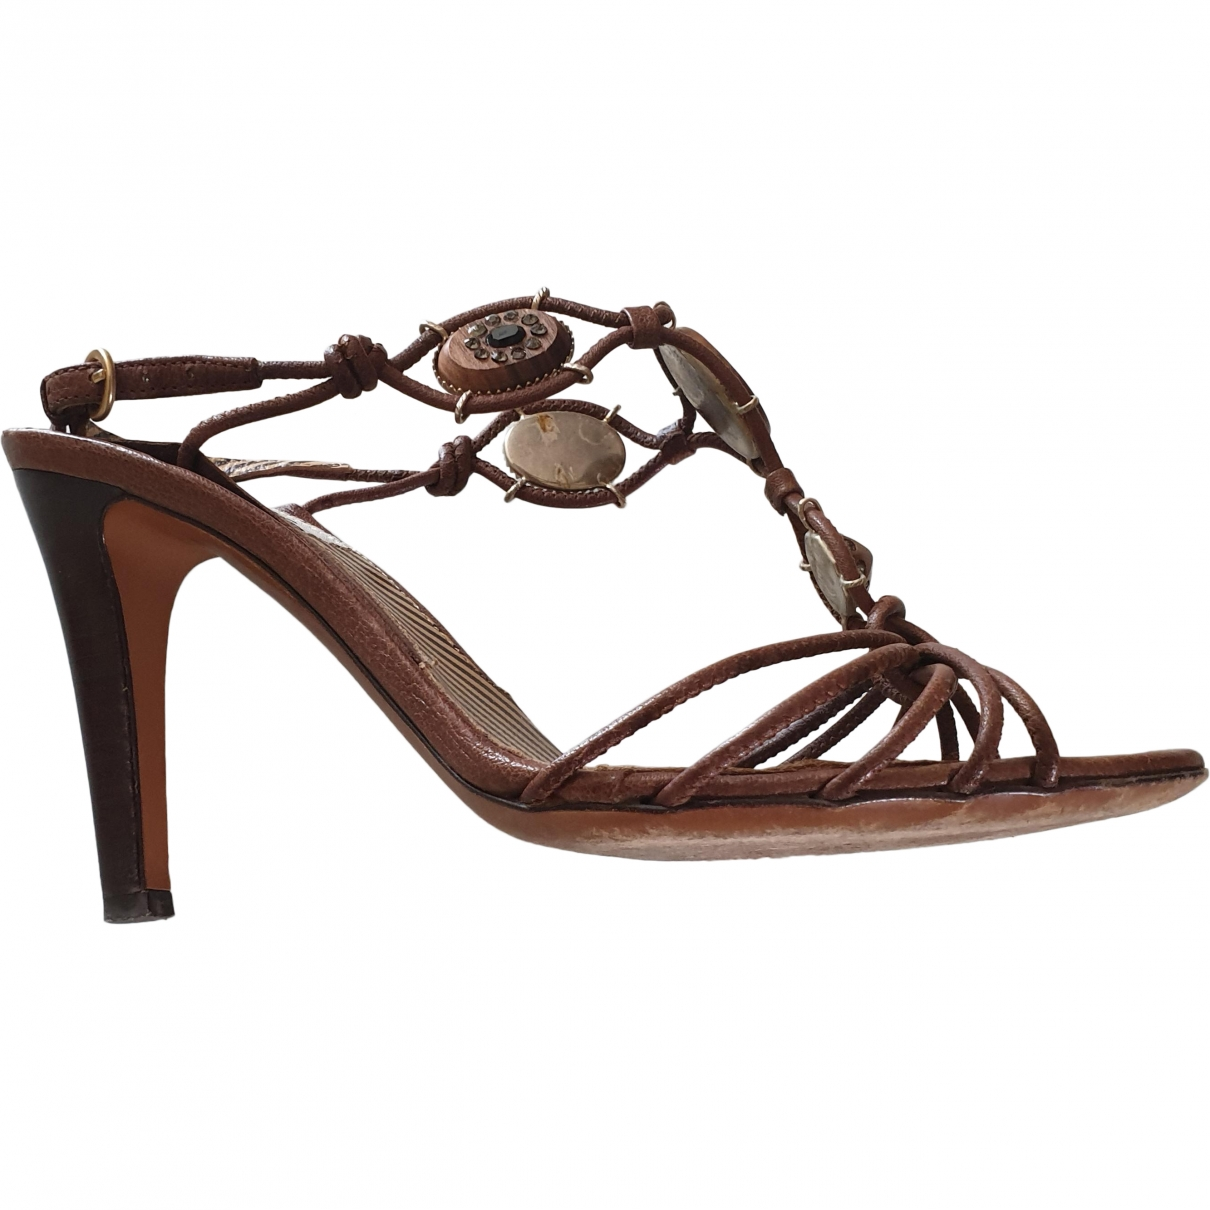 Moschino \N Brown Leather Sandals for Women 36 EU